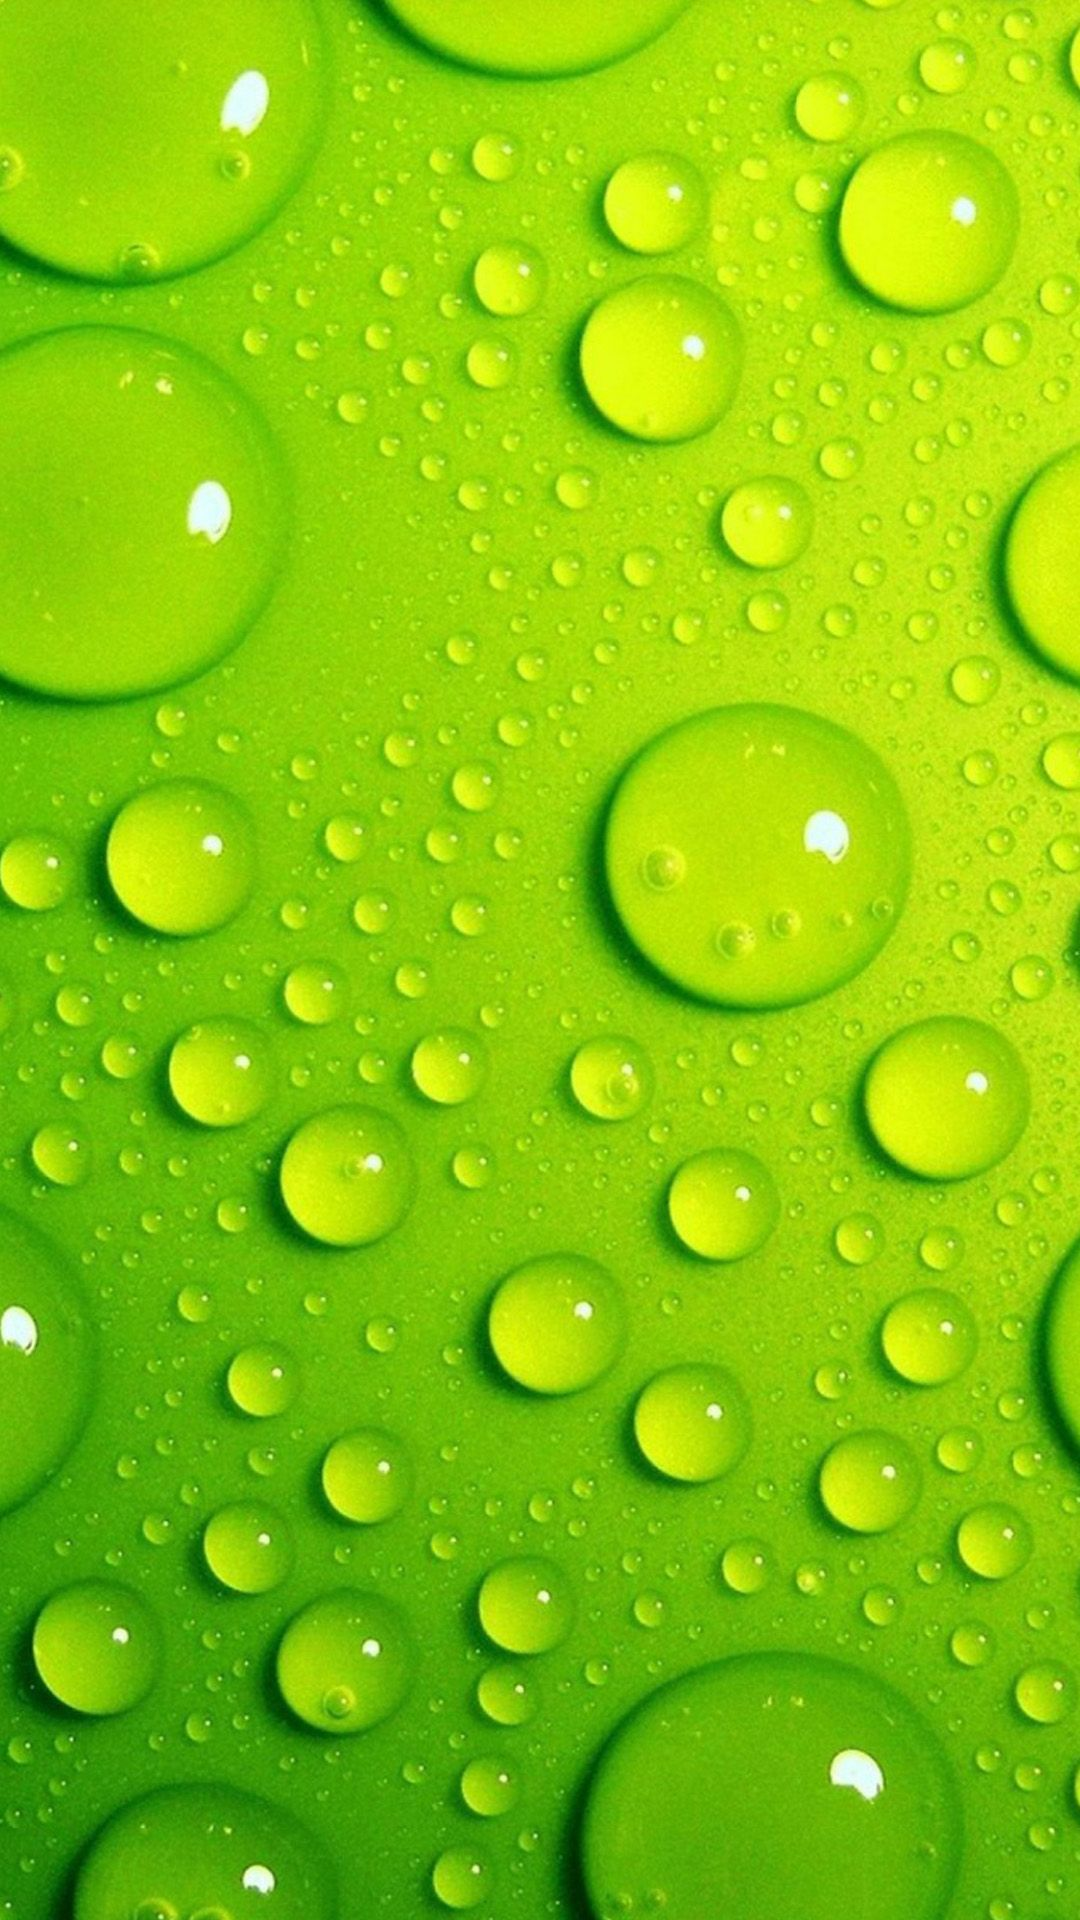 Green Blisters Samsung Galaxy Note 3 Wallpapers Bubbles Wallpaper Green Wallpaper Green Bubble Hd wallpaper lime slice bubbles macro